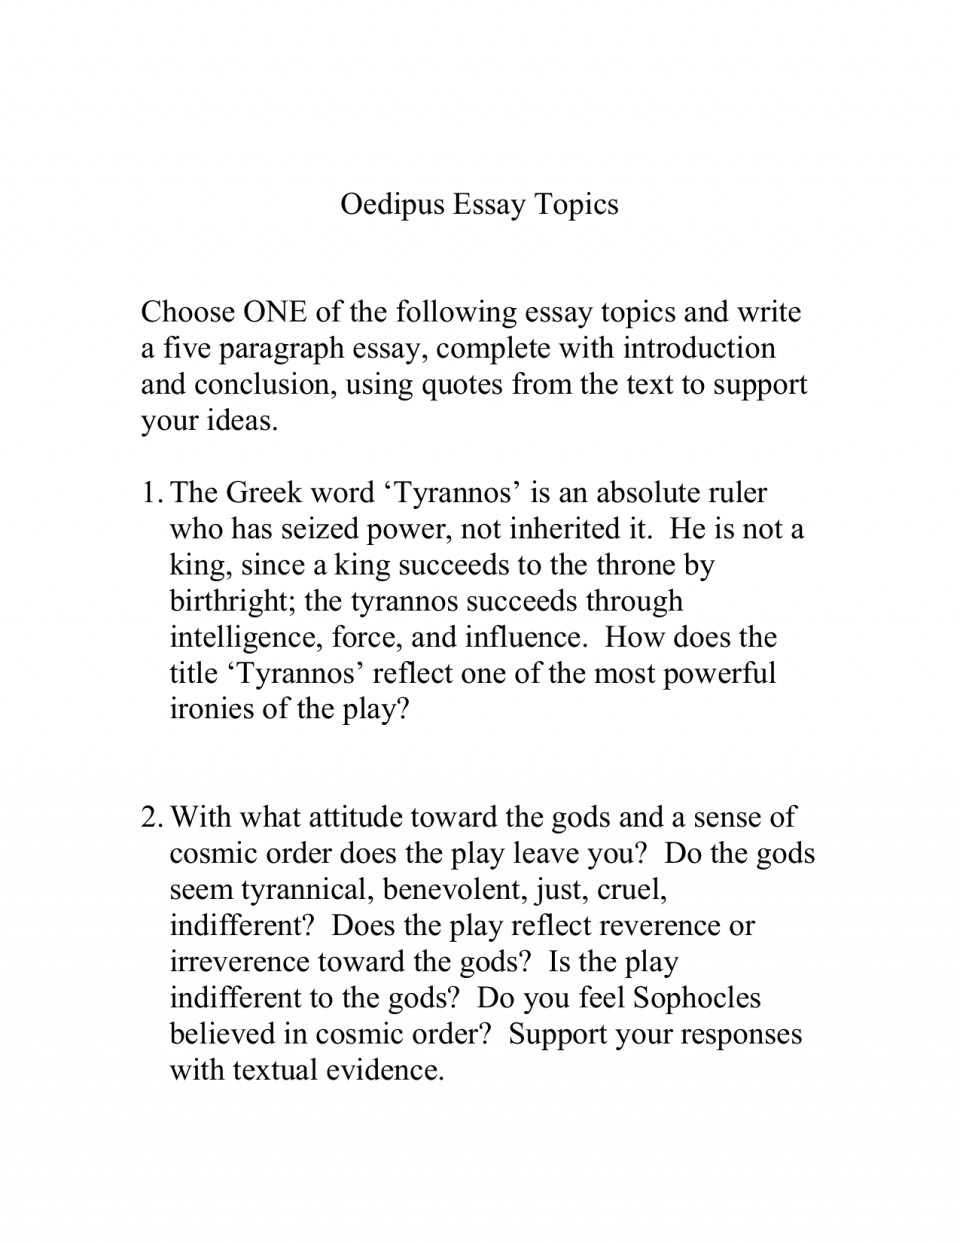 013 Essay Example 010776288 1 Paragraph Best 5 Topics For High School Middle 960